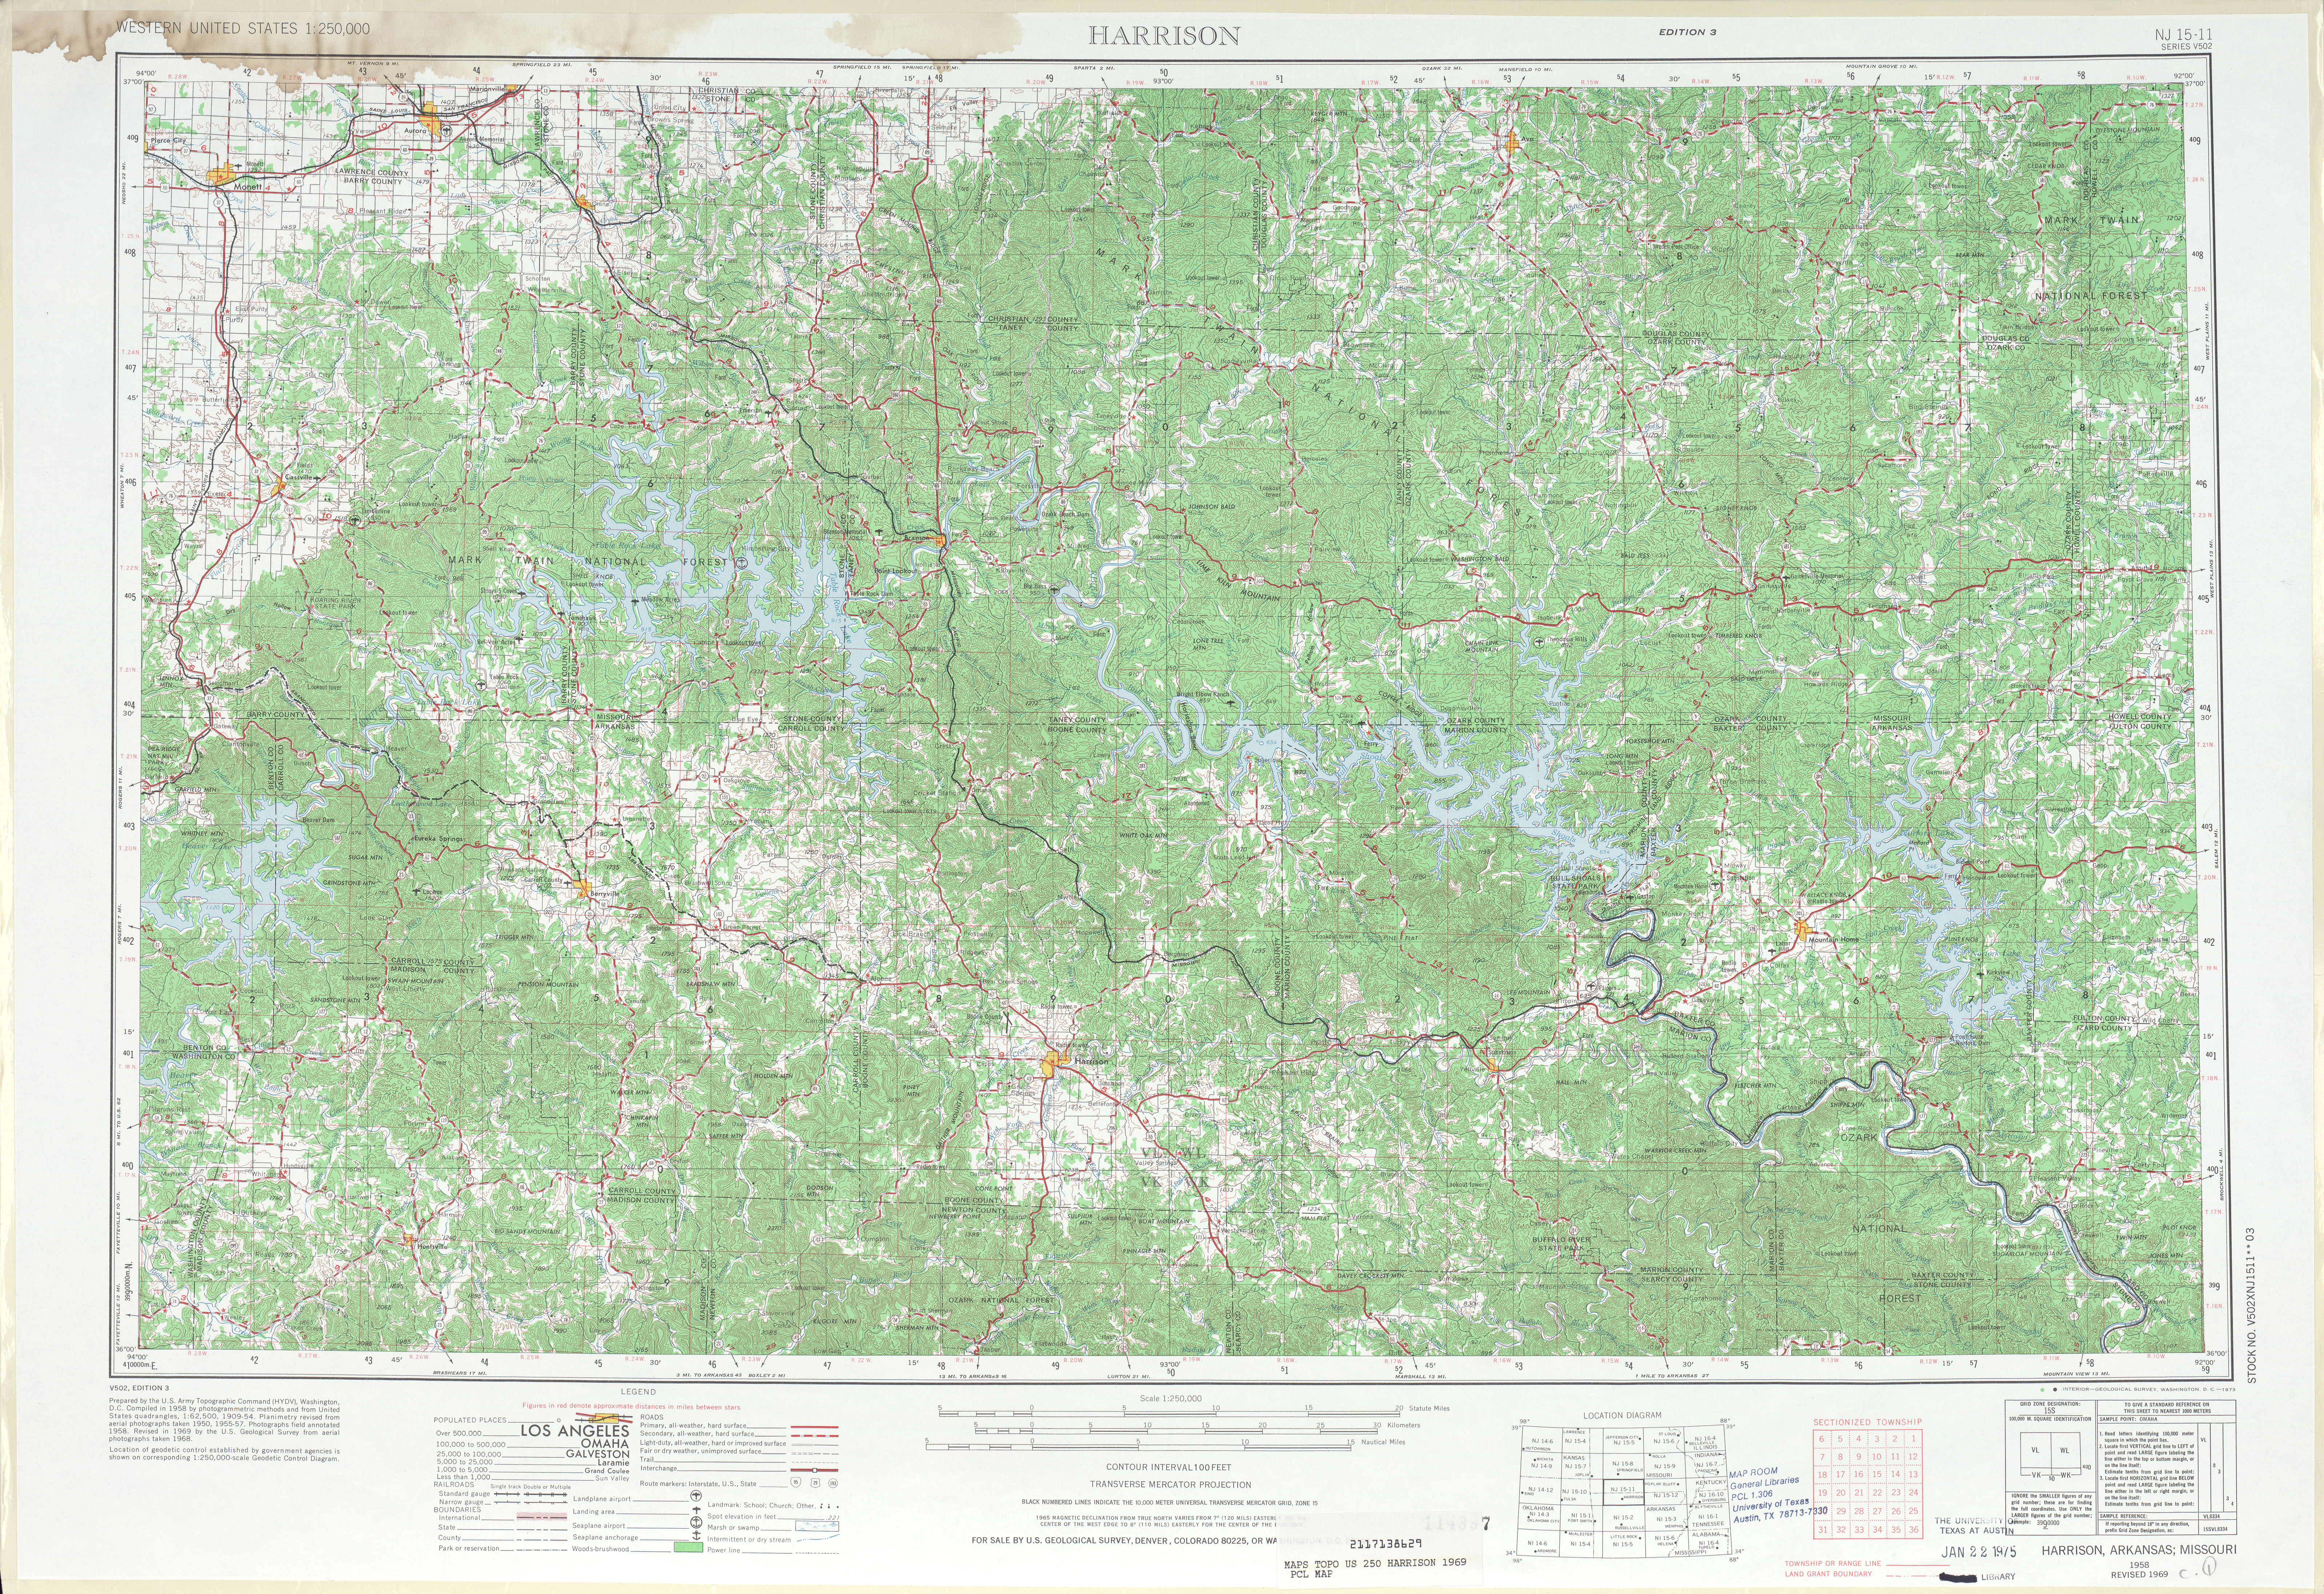 Harrison Topographic Map Sheet, United States 1969